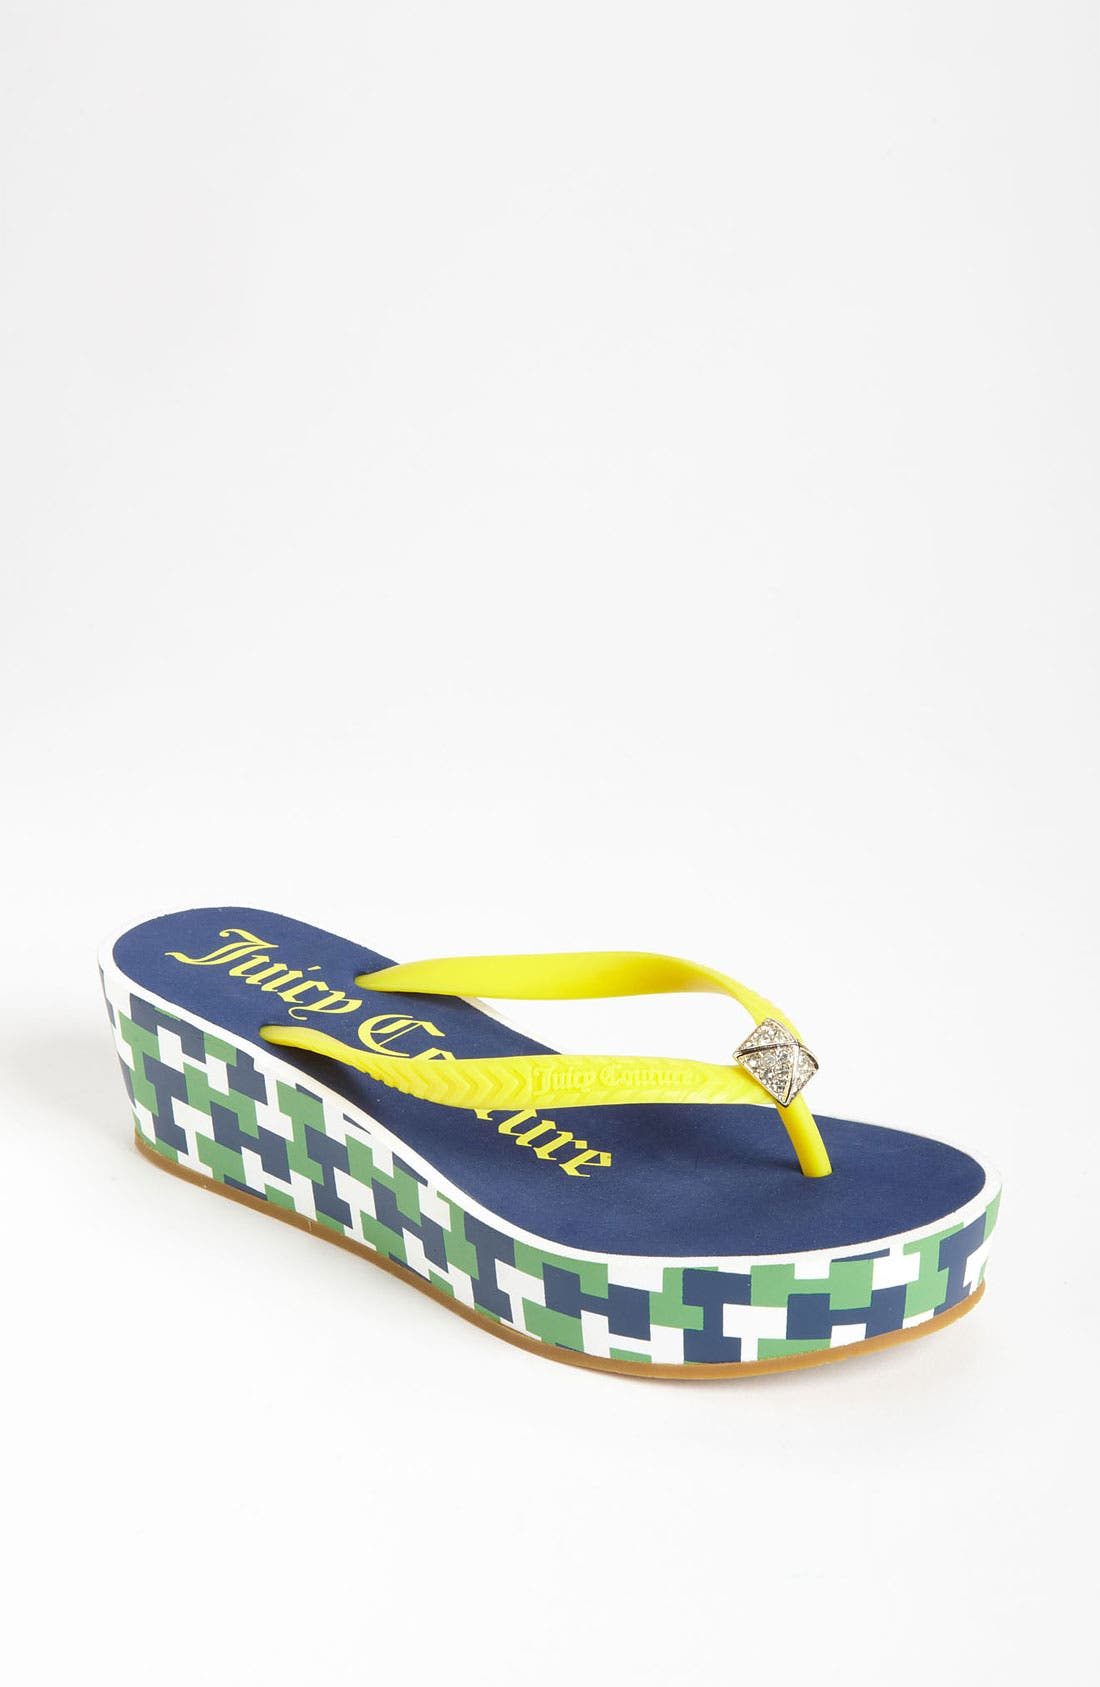 Main Image - Juicy Couture 'Irie' Flip Flop